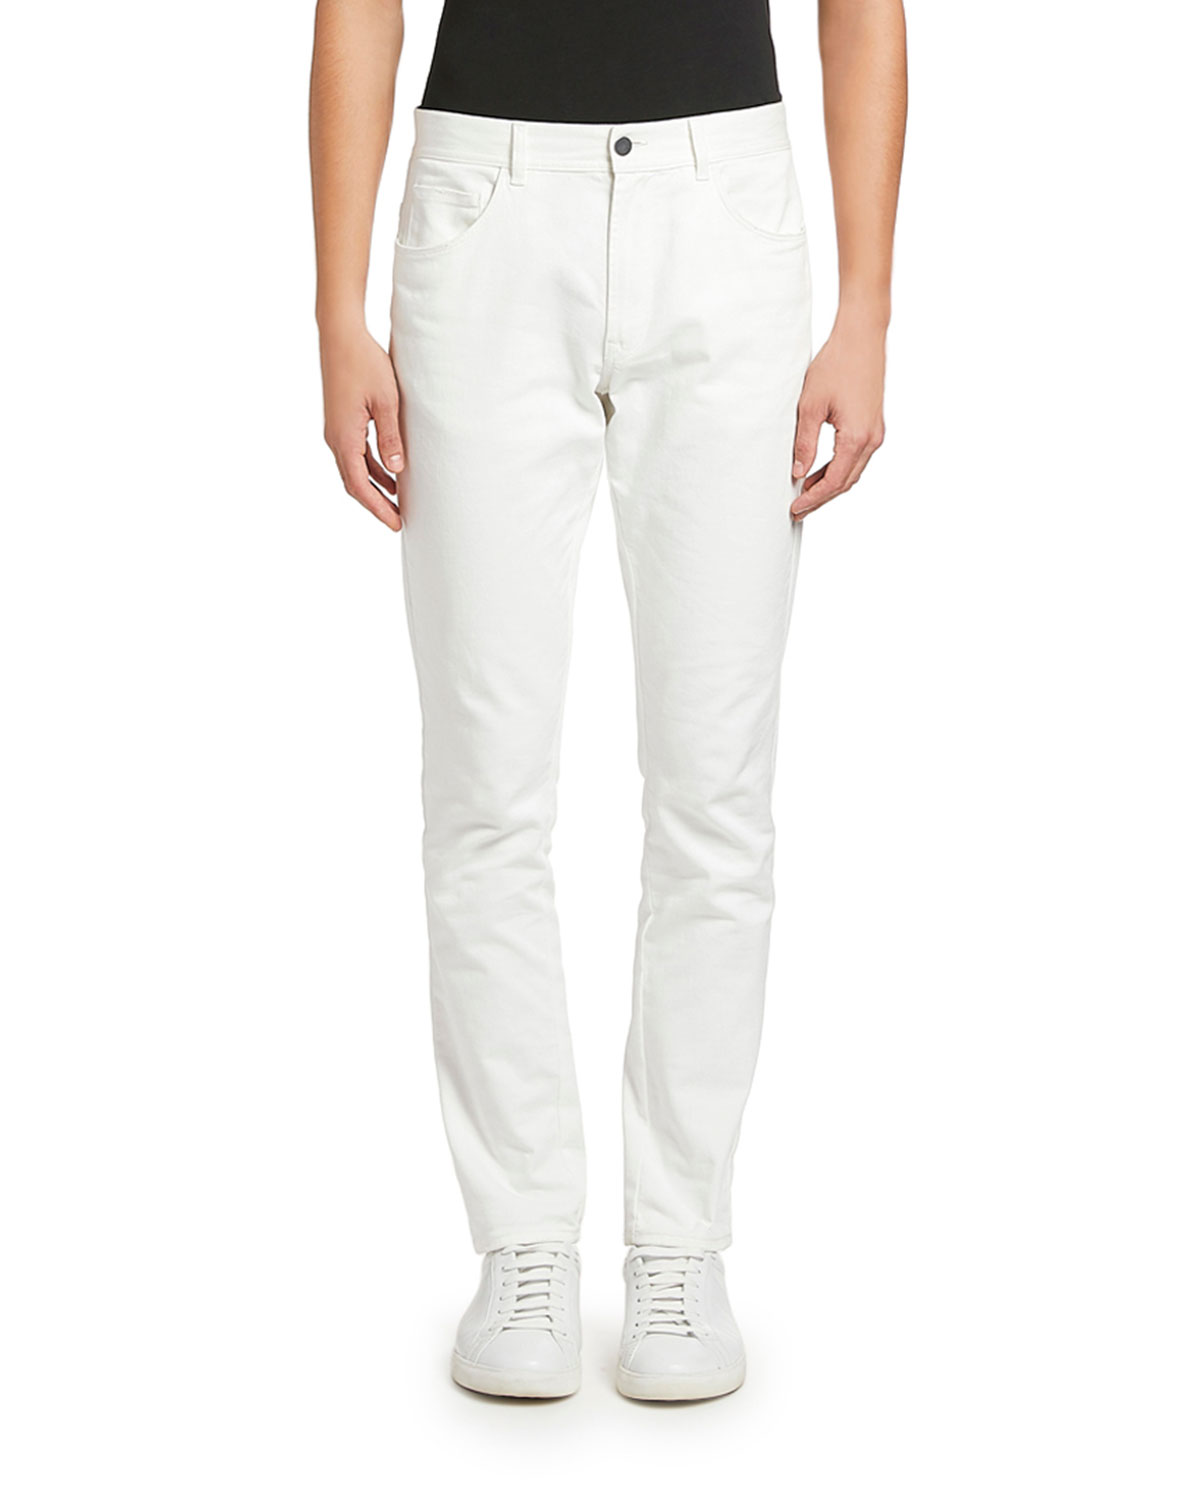 Moncler Men's White-Wash Basic Jeans